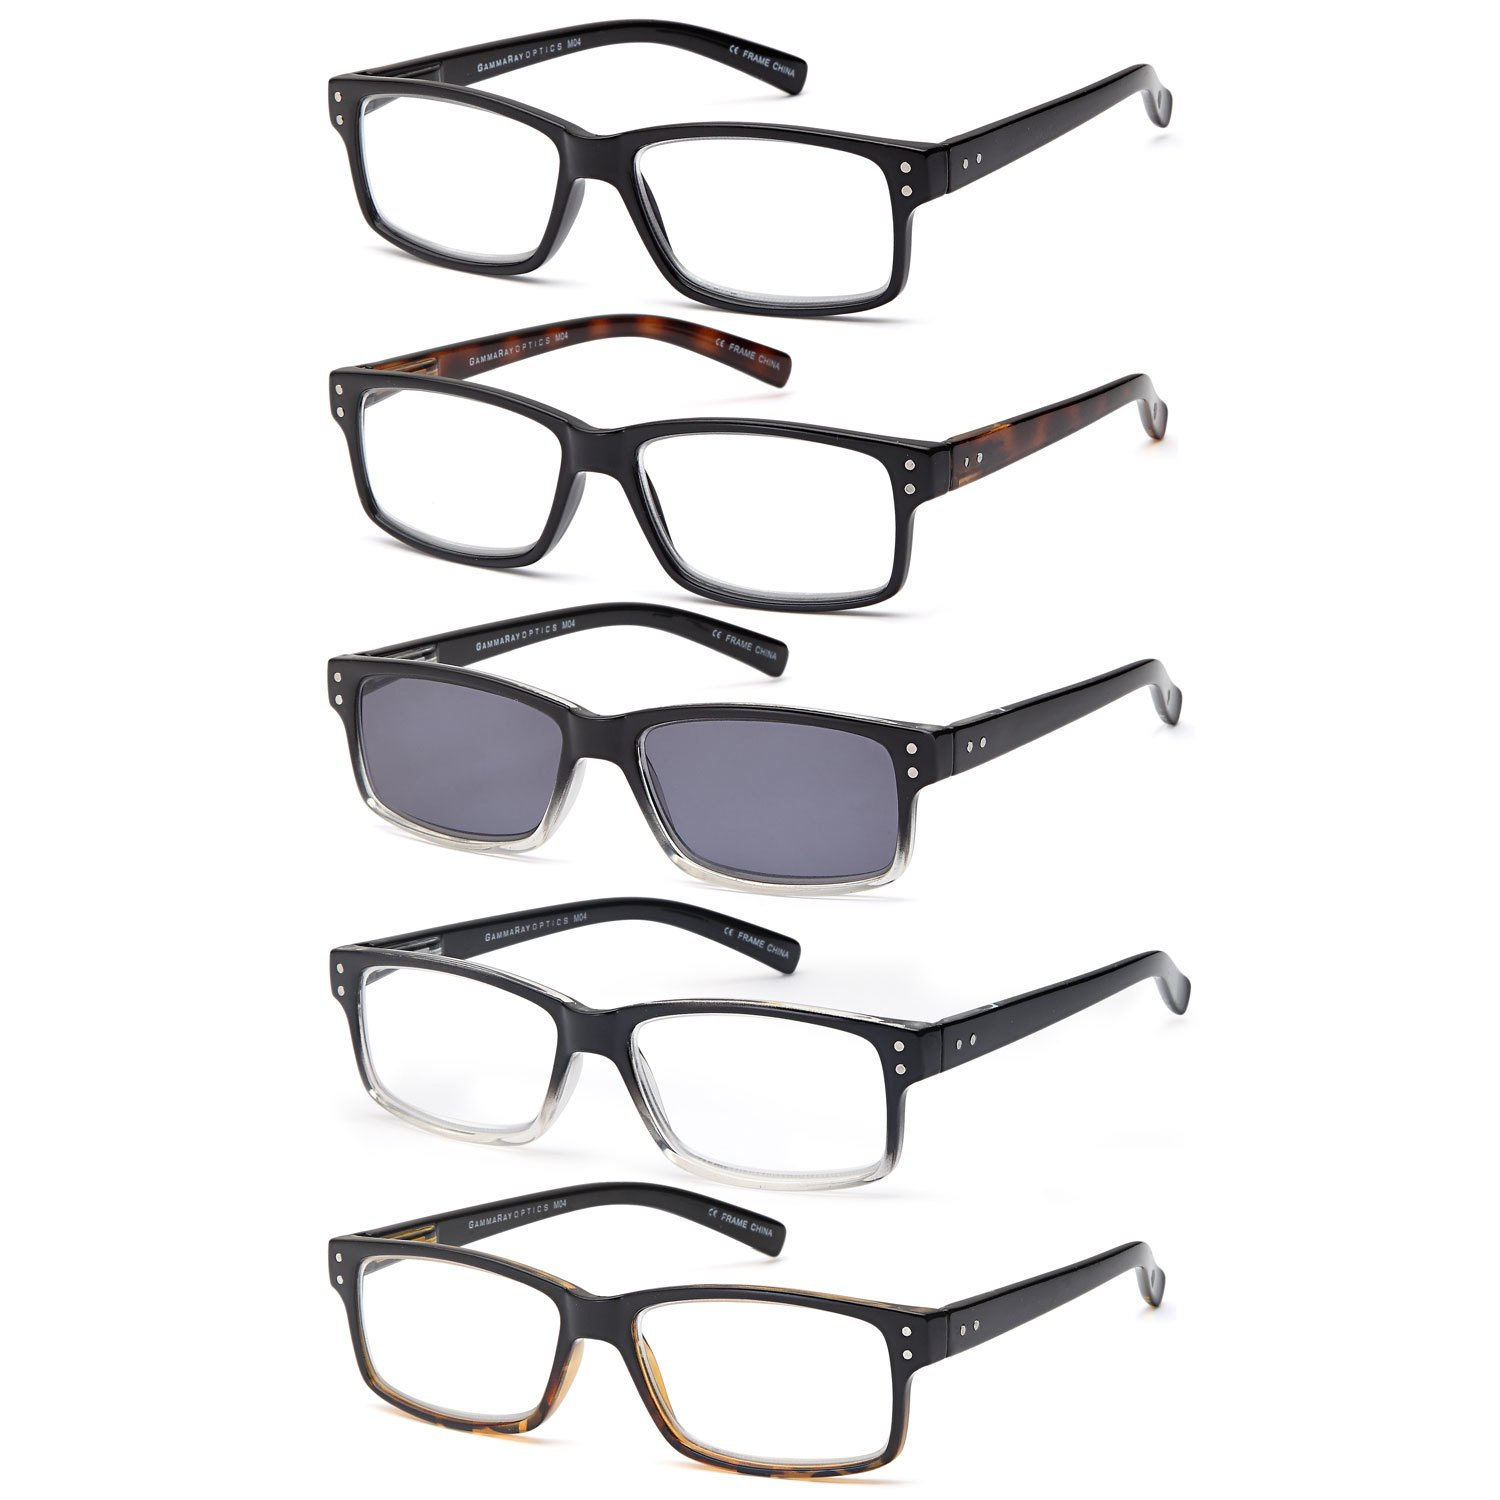 GAMMA RAY READERS 5 Pack Unisex Vintage Readers with Sun Reader Flexible Spring Hinge Reading Glasses for Men and Women – 2.00x